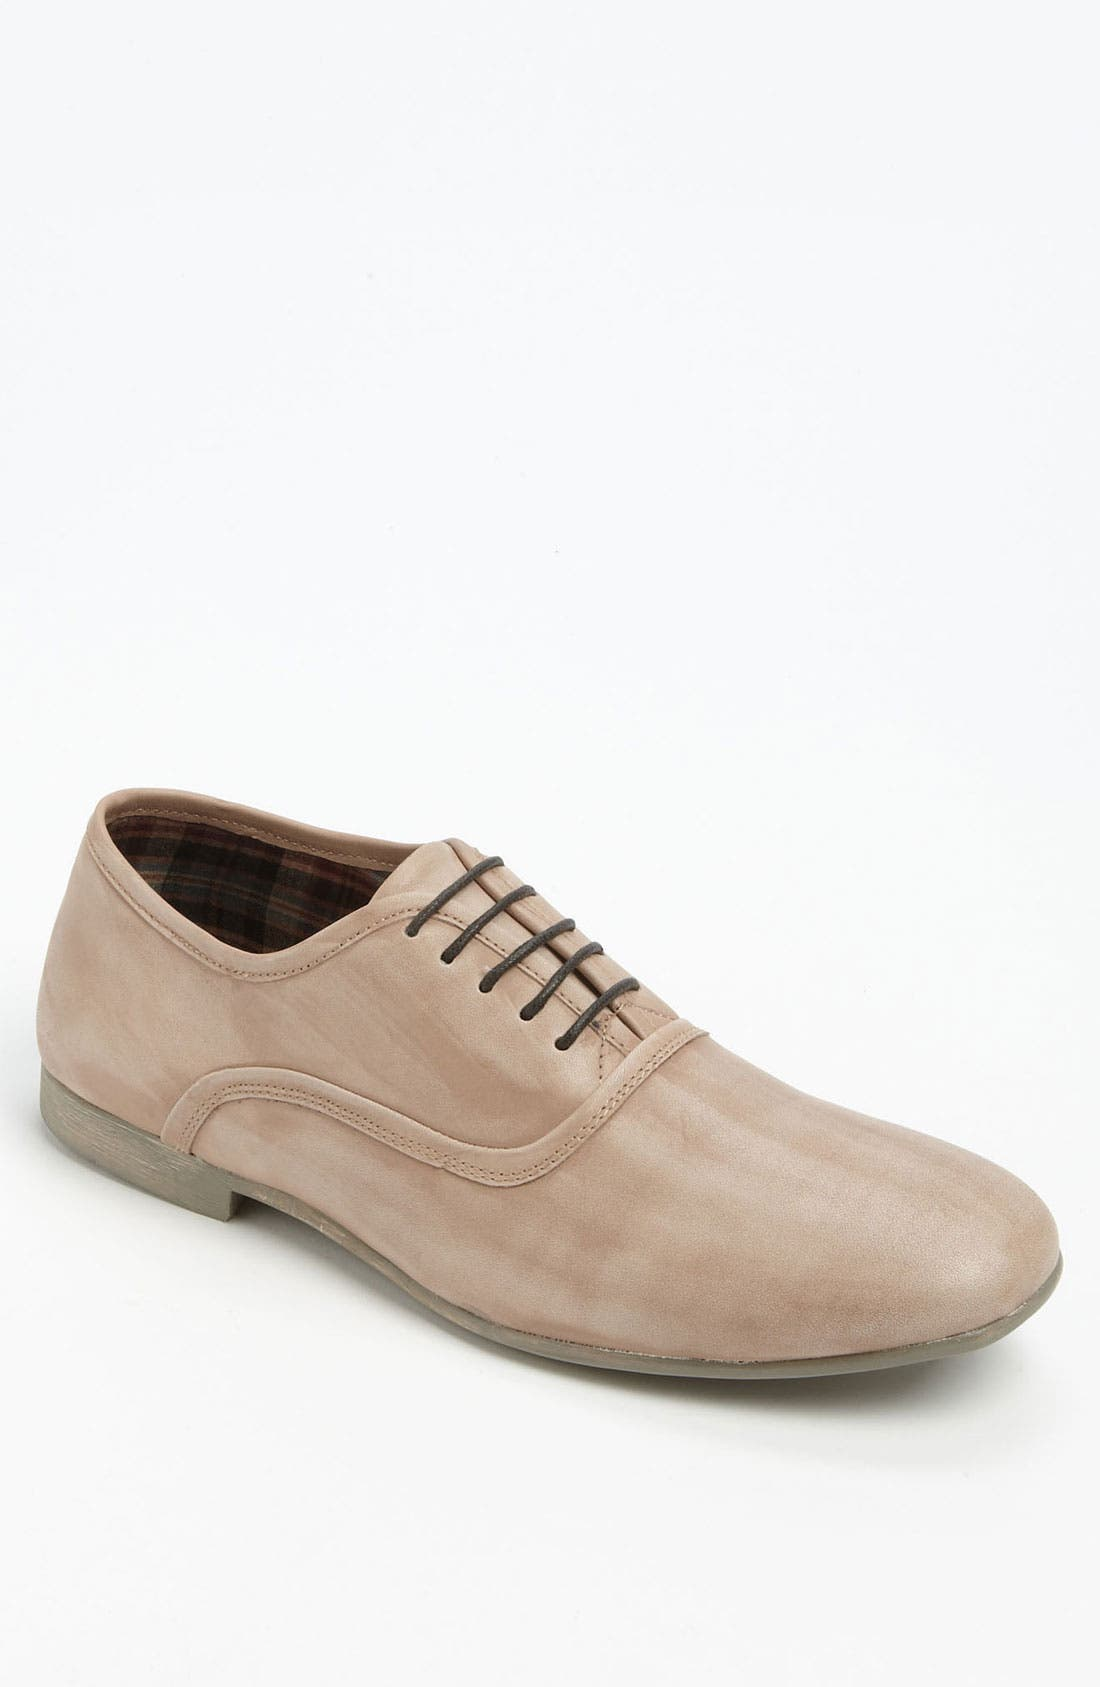 Main Image - Bed Stu 'Cosburn' Oxford (Men)